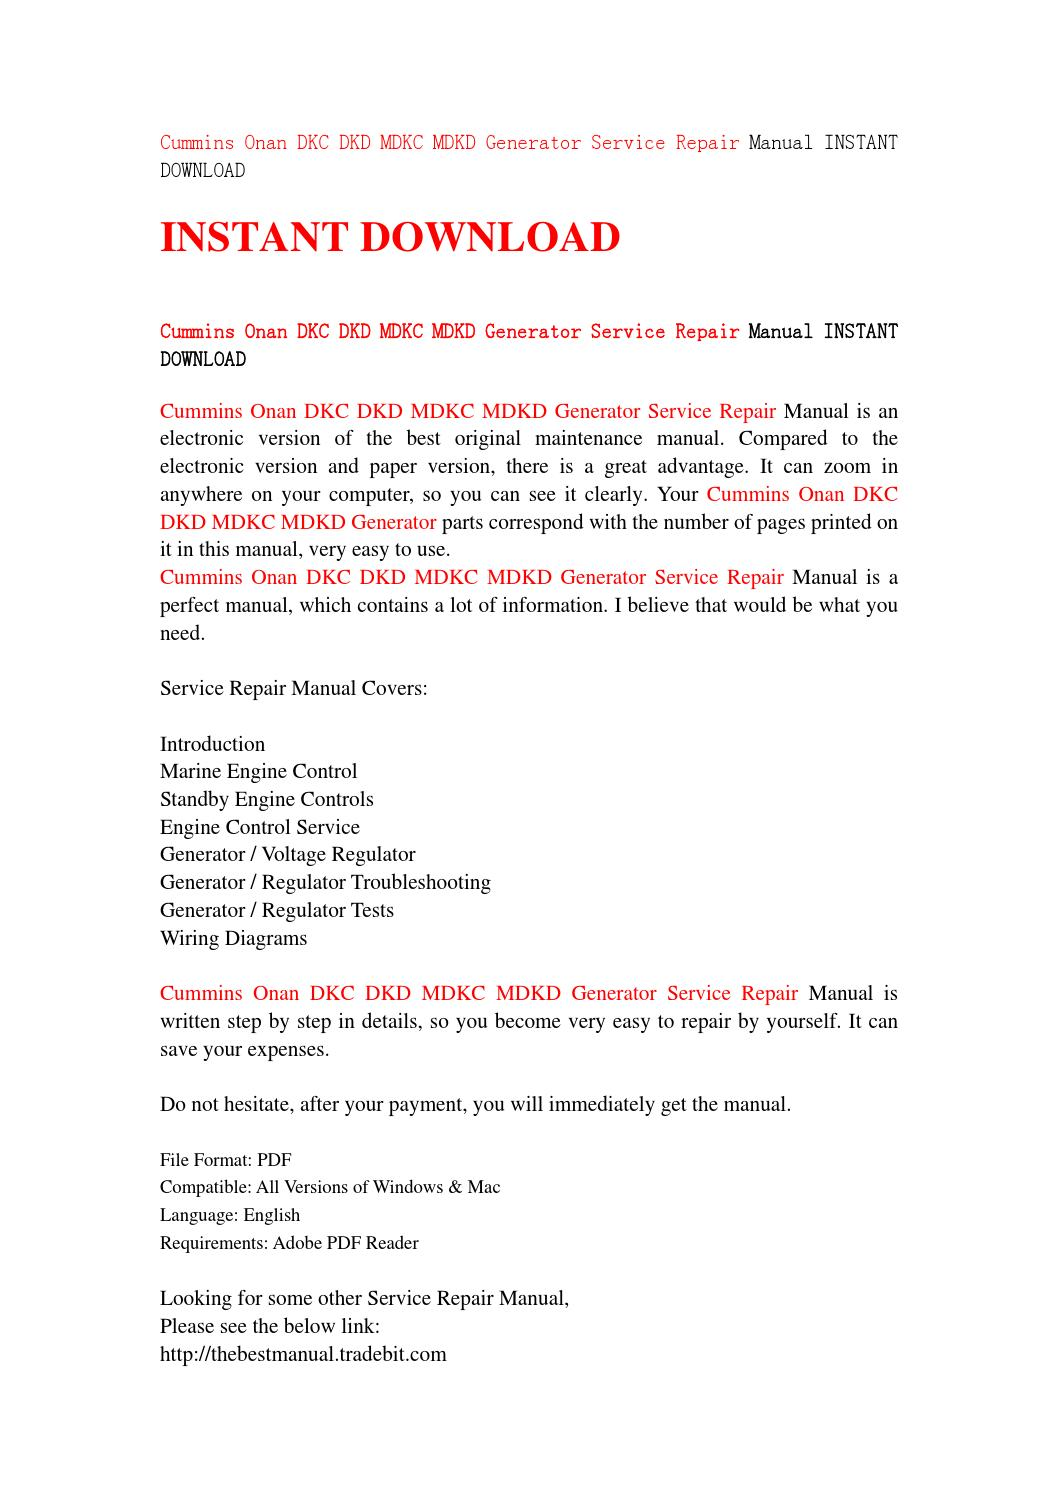 Marine Voltage Regulator Wiring Diagram Cummins Onan Dkc Dkd Mdkc Mdkd Generator Service Repair Manual Instant Download By Jhsjefn7 Issuu